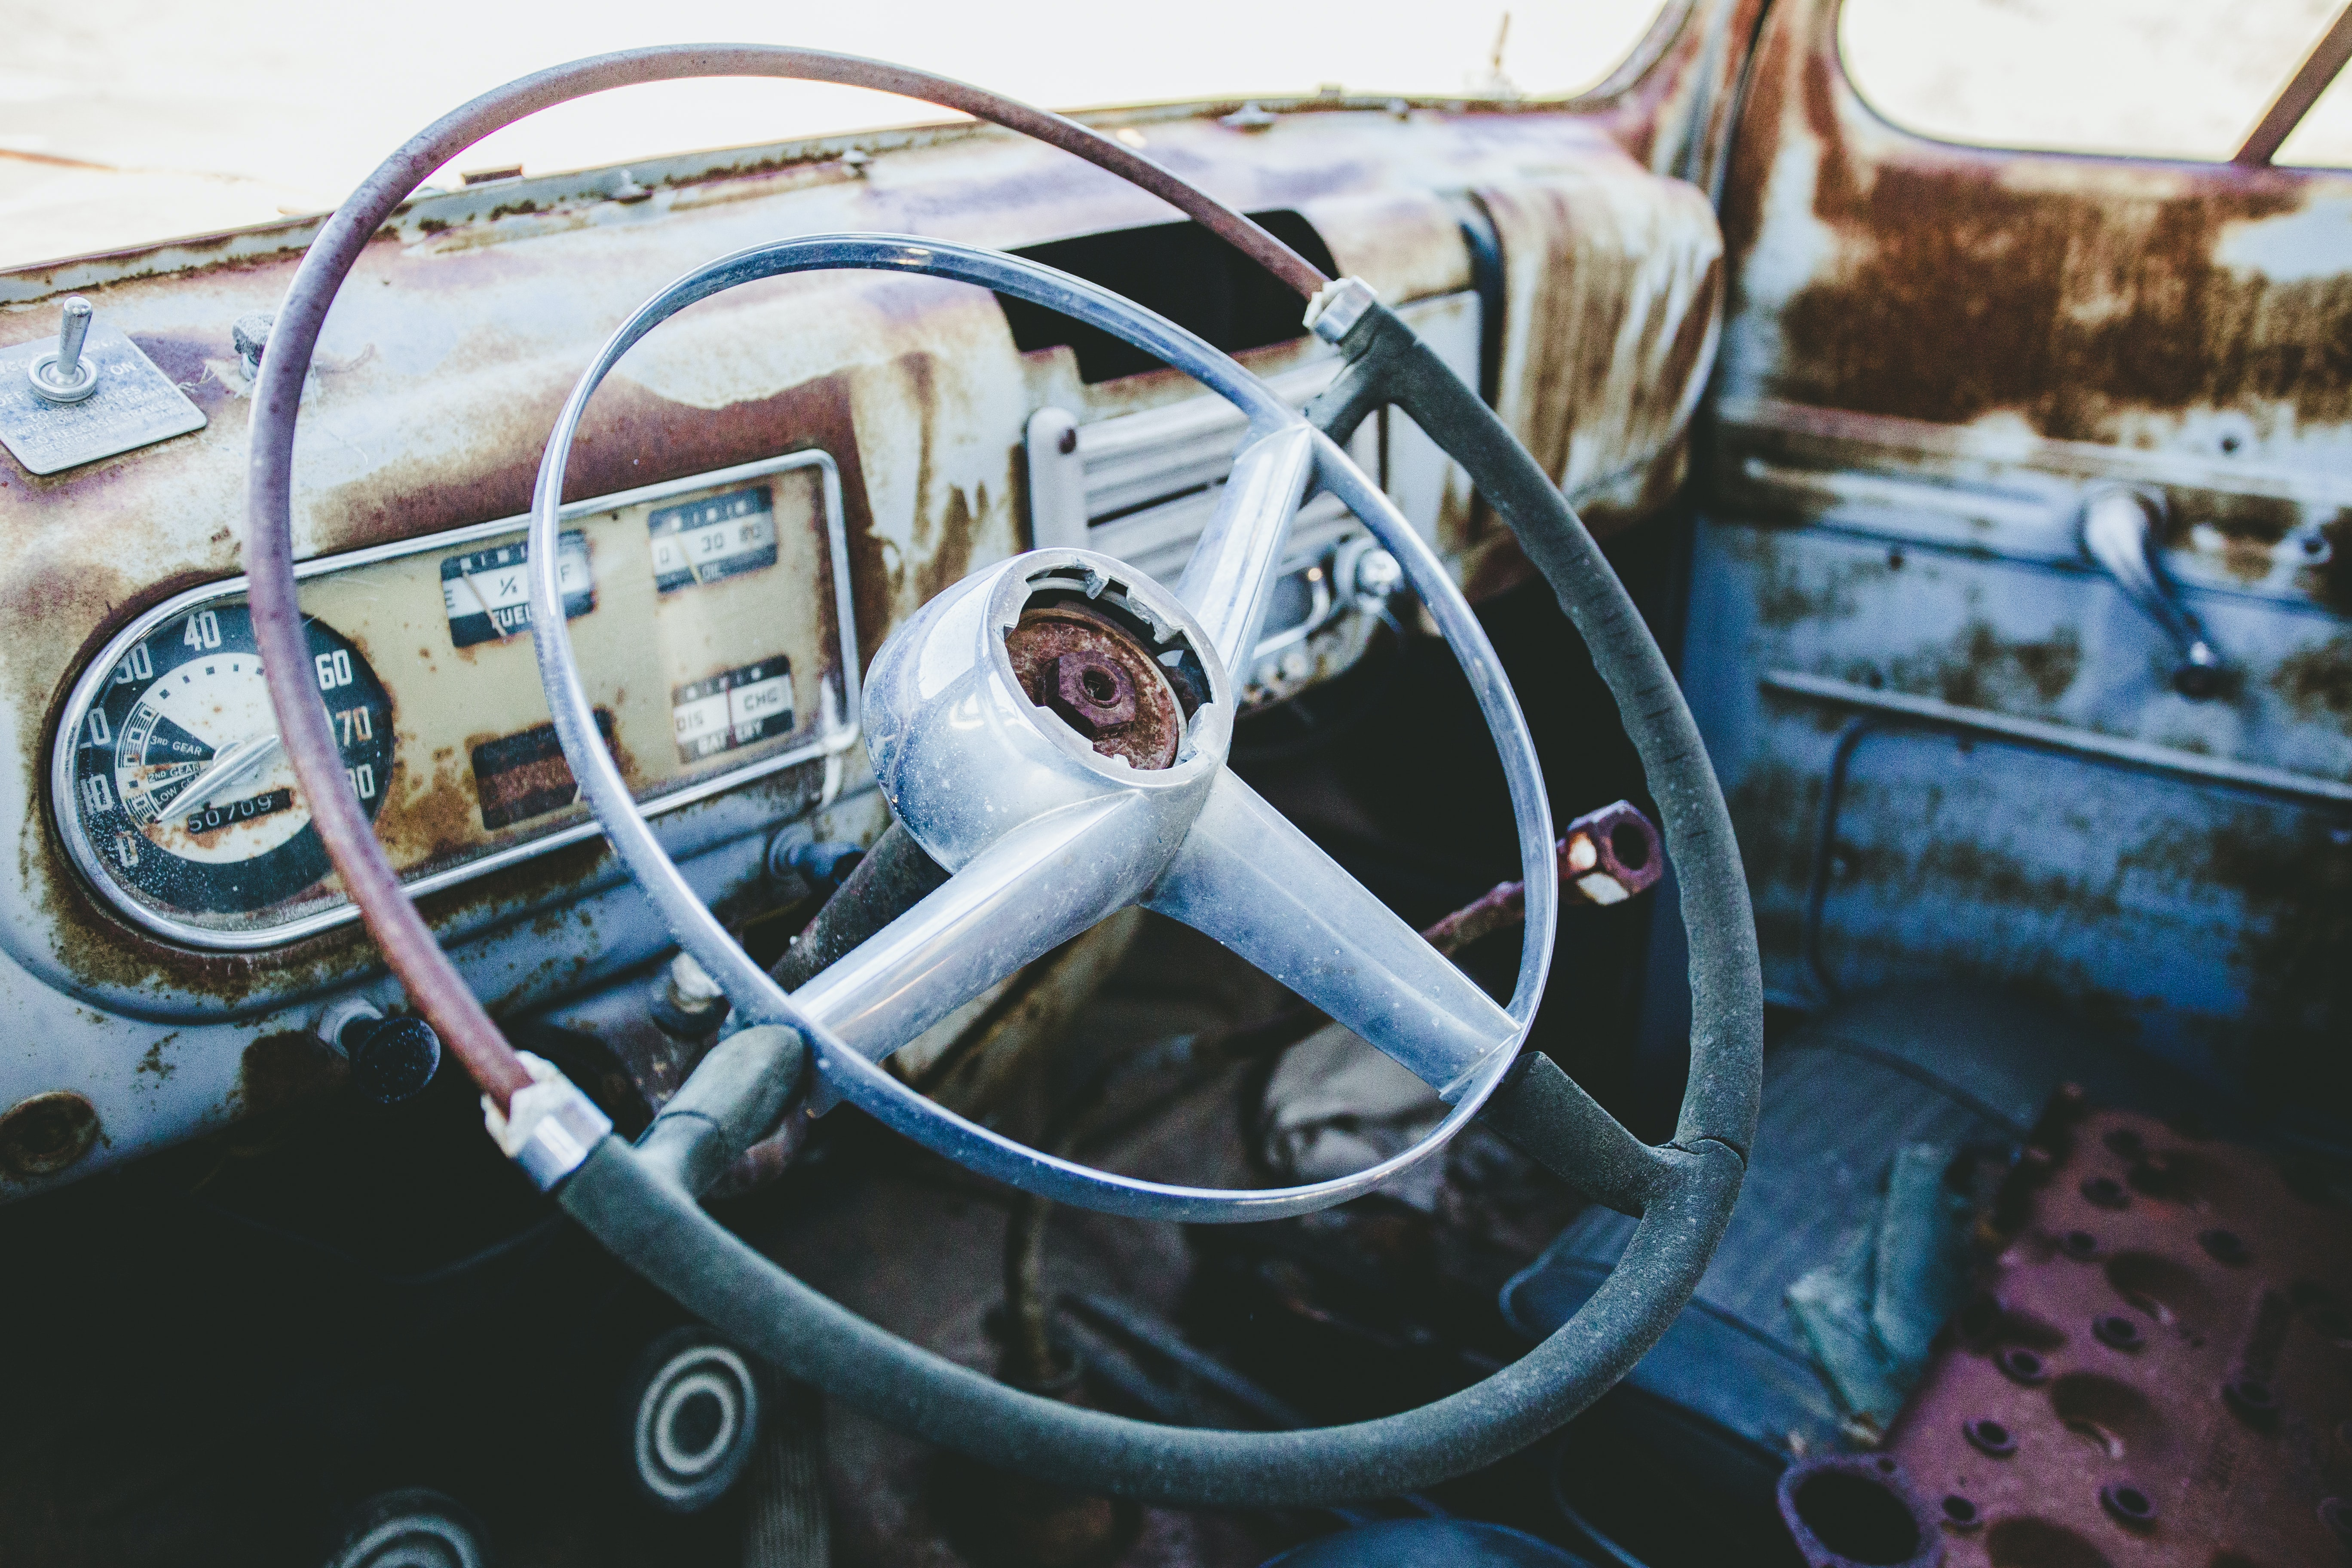 Steering wheel and speedometer in a rusty, abandoned classic car